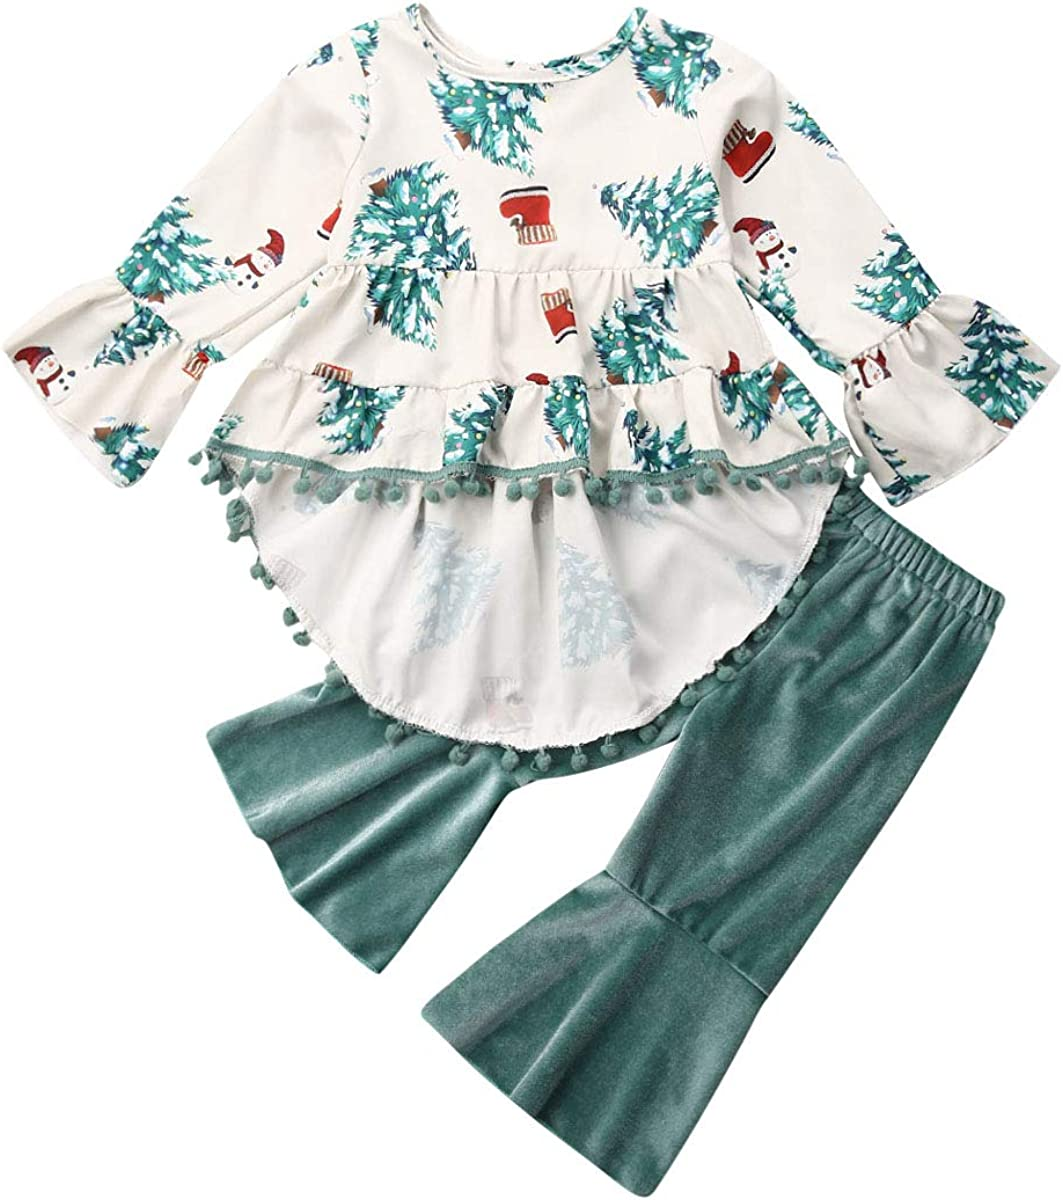 Boho Baby Clothes My First Christmas 292013 Baby Girl Clothes Toddler Girl Christmas Dress Boho Kids Clothes